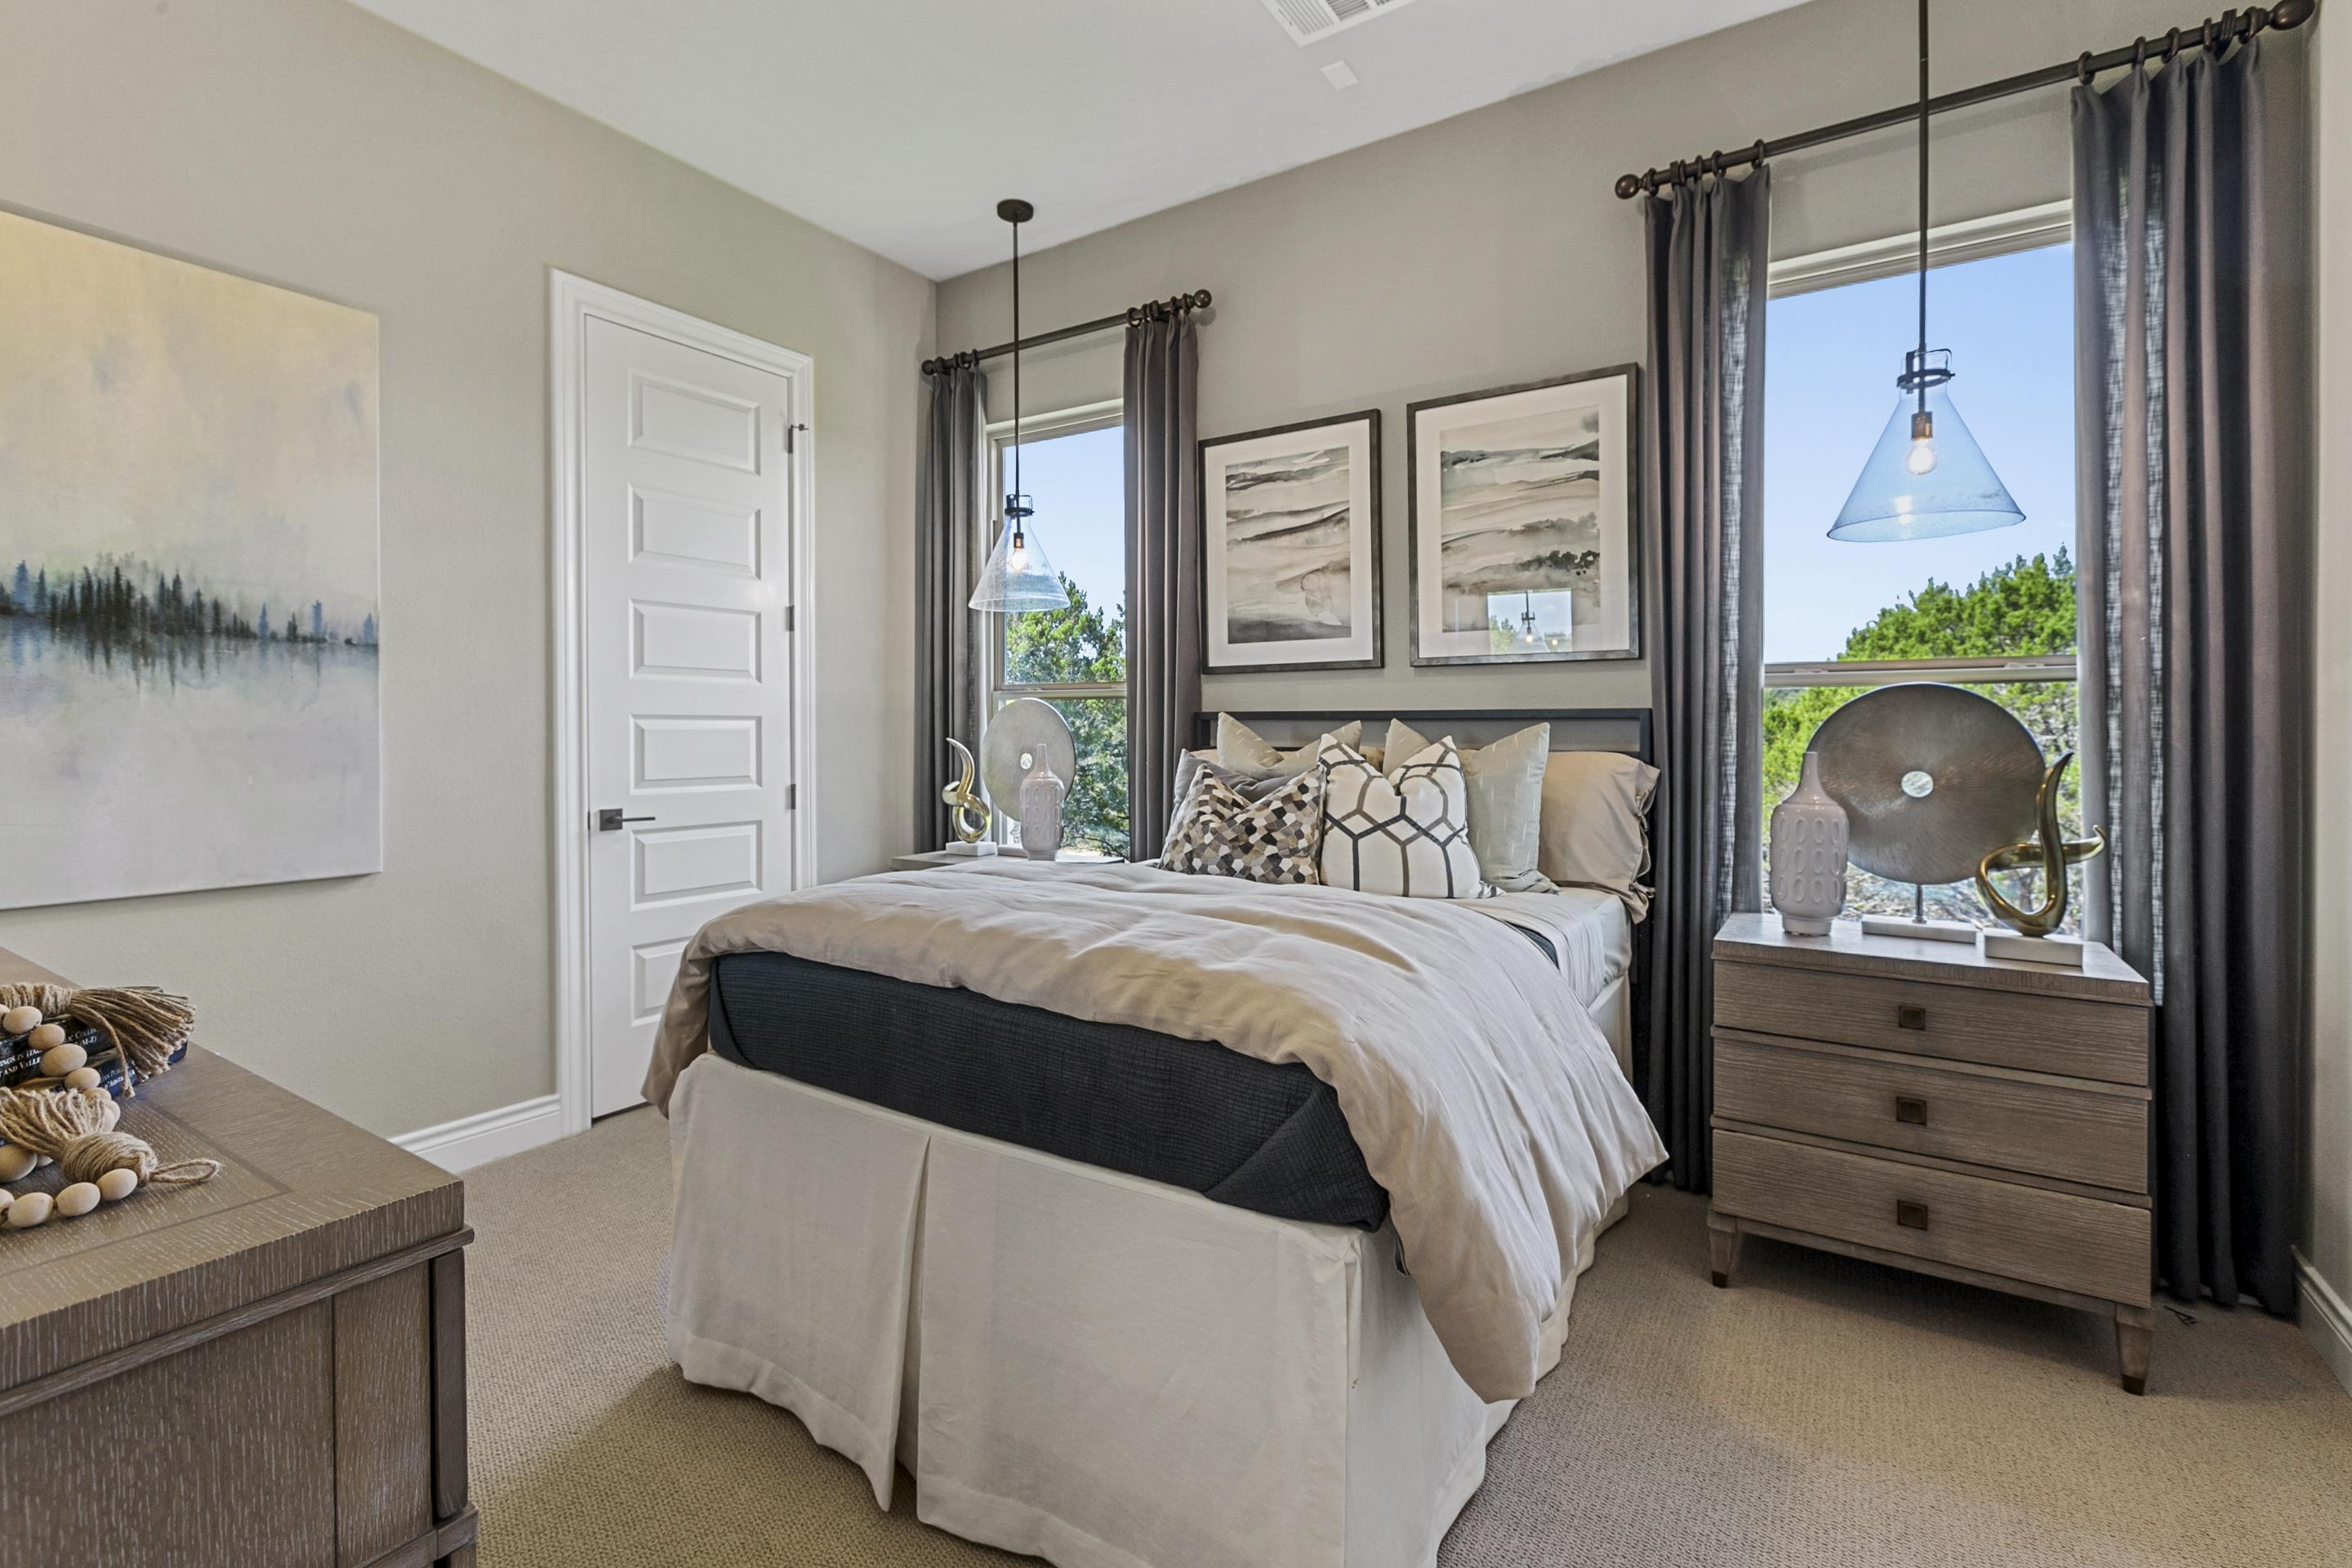 Bedroom featured in the Copperleaf By Hill Country Artisan Homes in Austin, TX